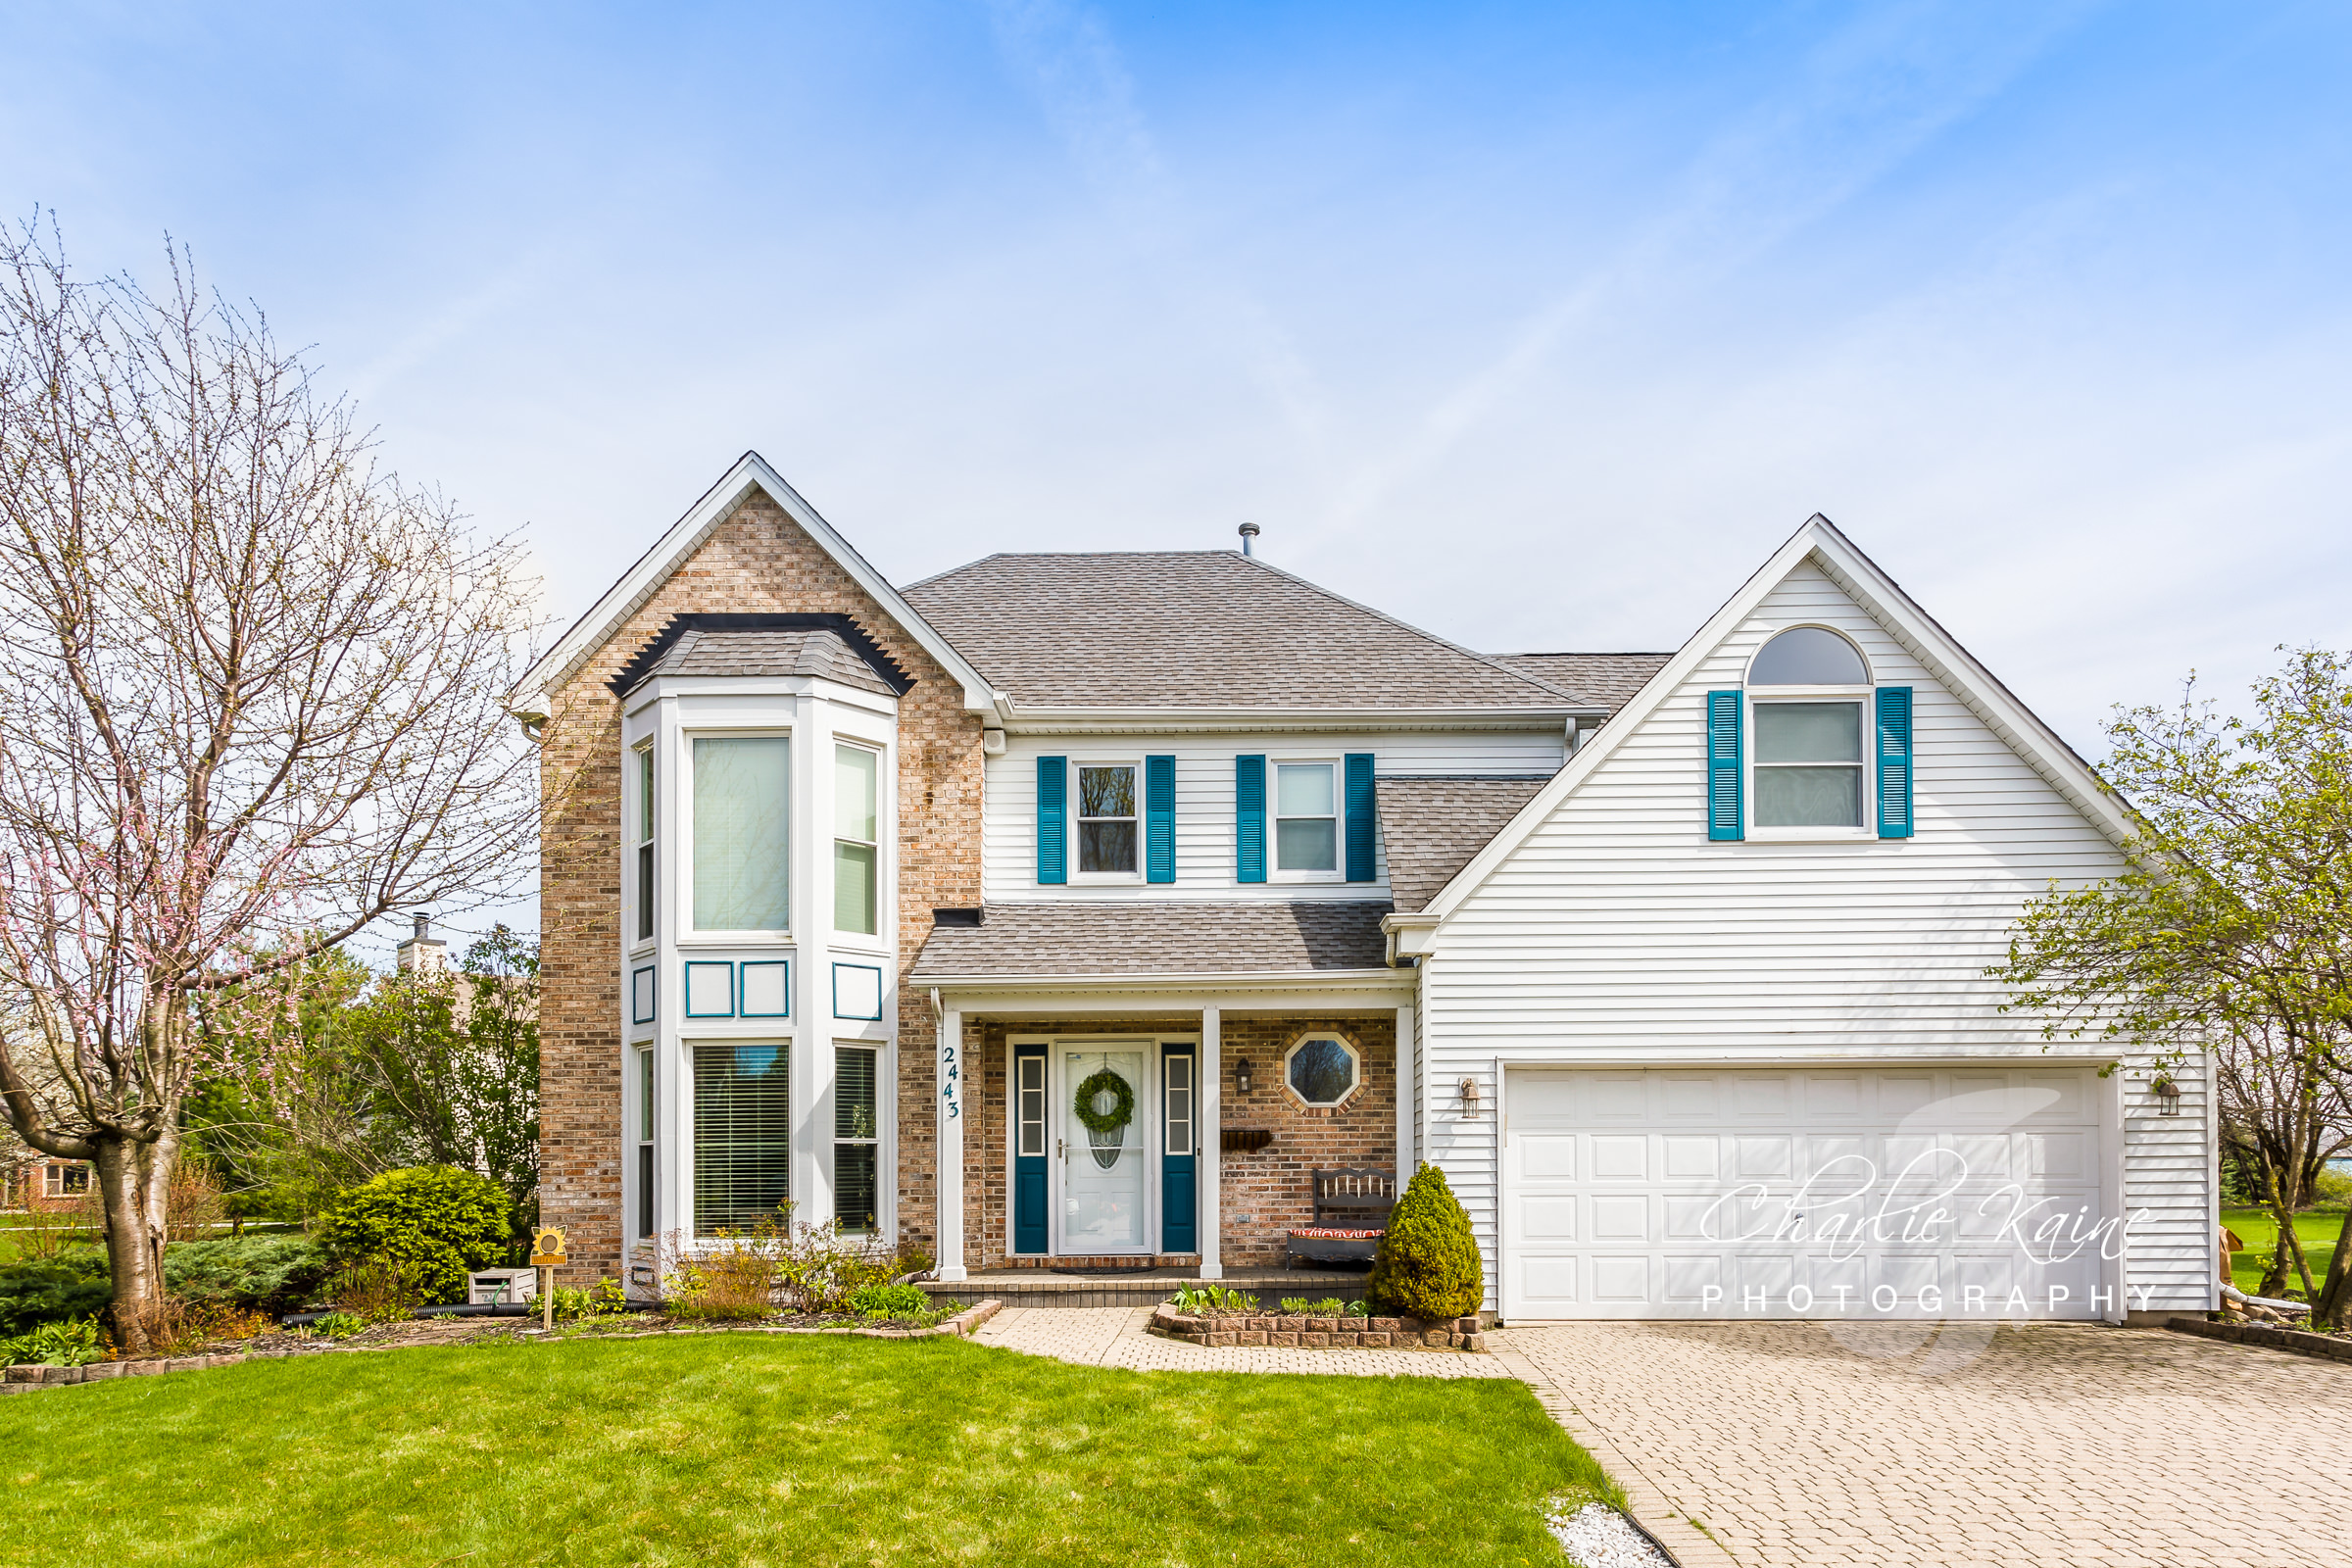 Residential Real Estate - Naperville, IL-1.jpg